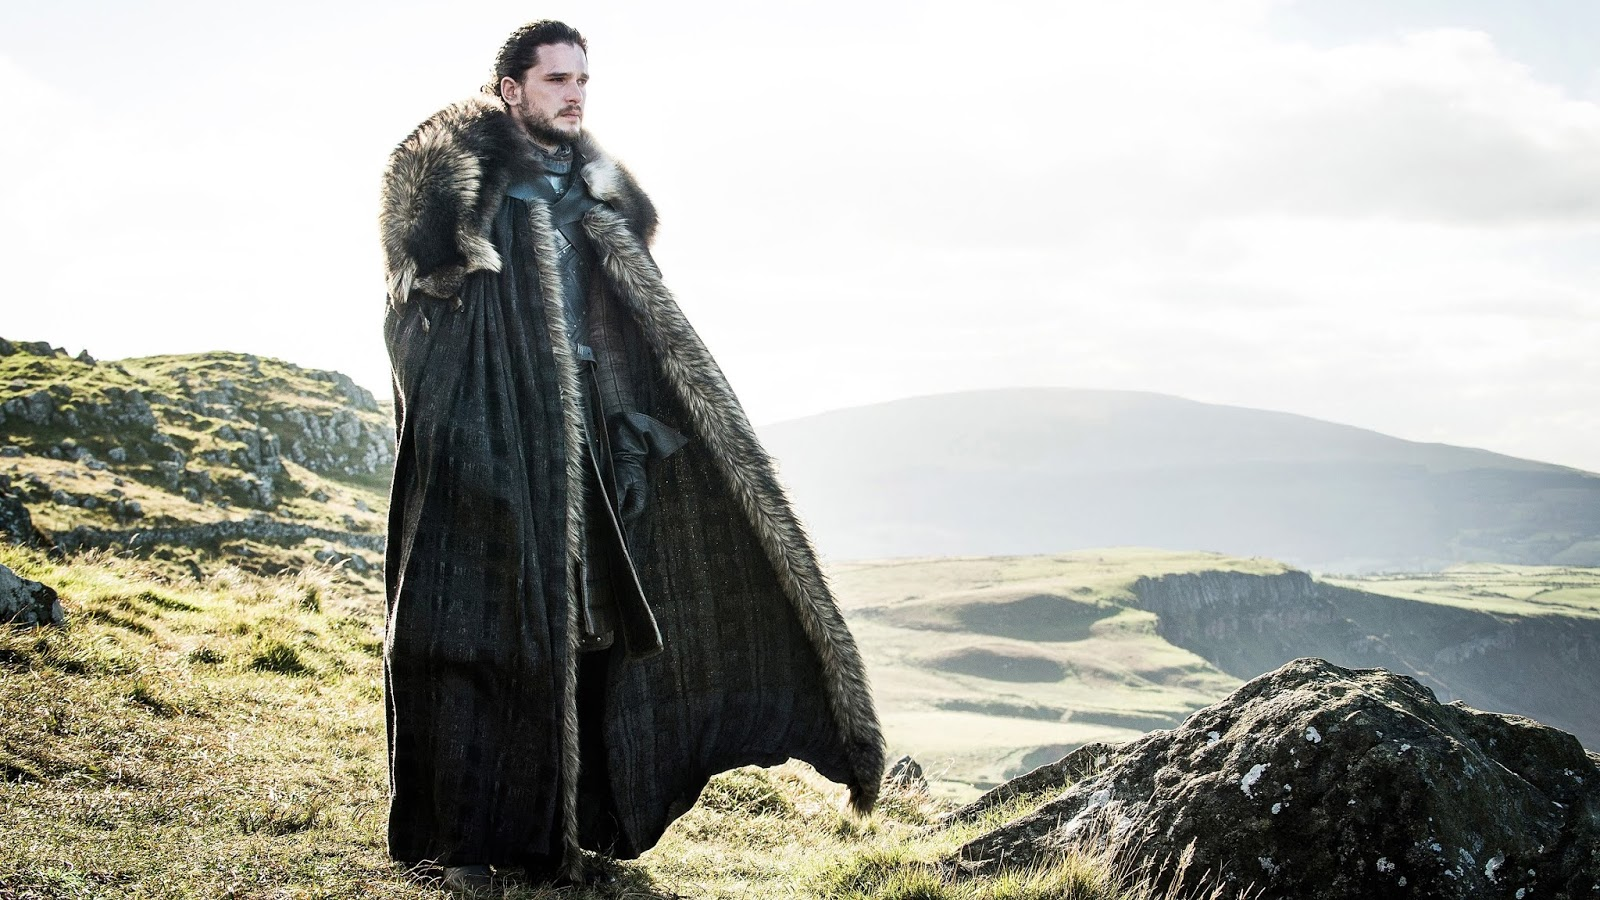 jon snow,jon snow tribute,jon snow targaryen,john snow,snow,game of thrones,jon snow epic,jon snow dead,jon snow clip,jon snow scene,jon snow fight,jon snow video,jon snow death,jon snow kills,lacrim jon snow,jon snow lacrim,jon snow dragon,jon snow speech,jon,rhaegal jon snow,jon snow dragons,jon snow ygritte,jon snow season 8,jon snow parents,jon snow executes,jon snow e rhaegal